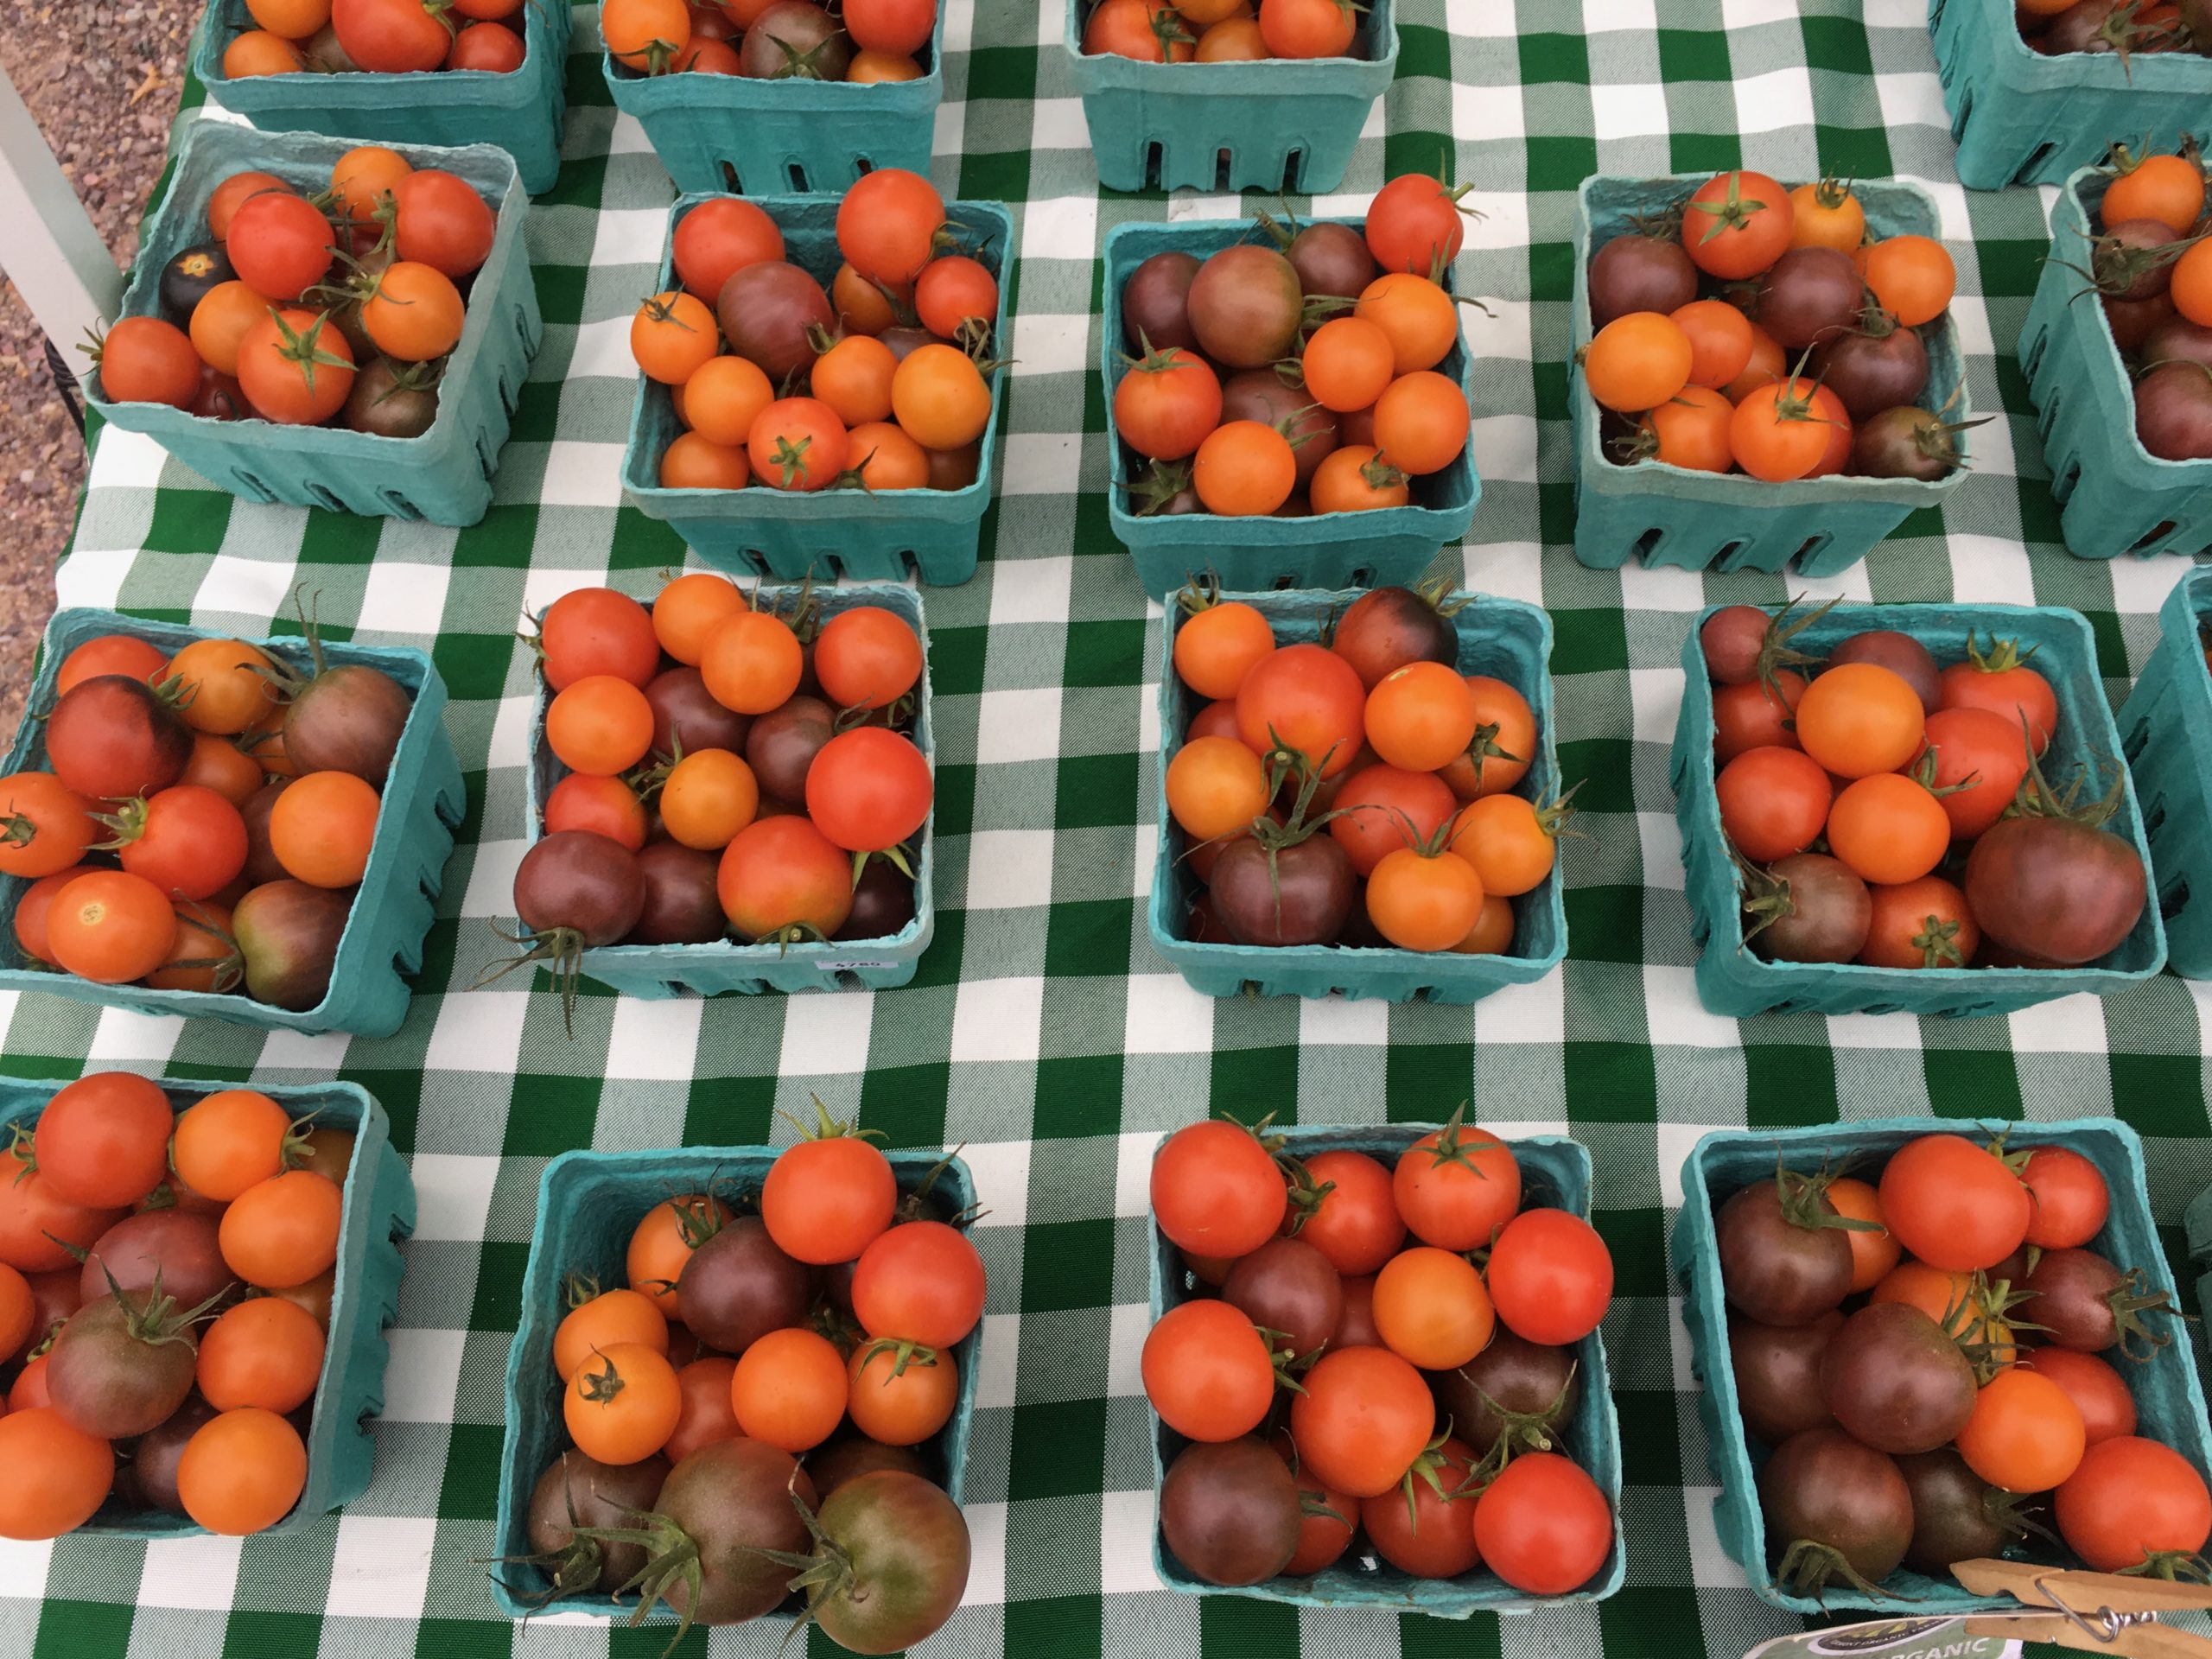 tomatoes of various colors in baskets